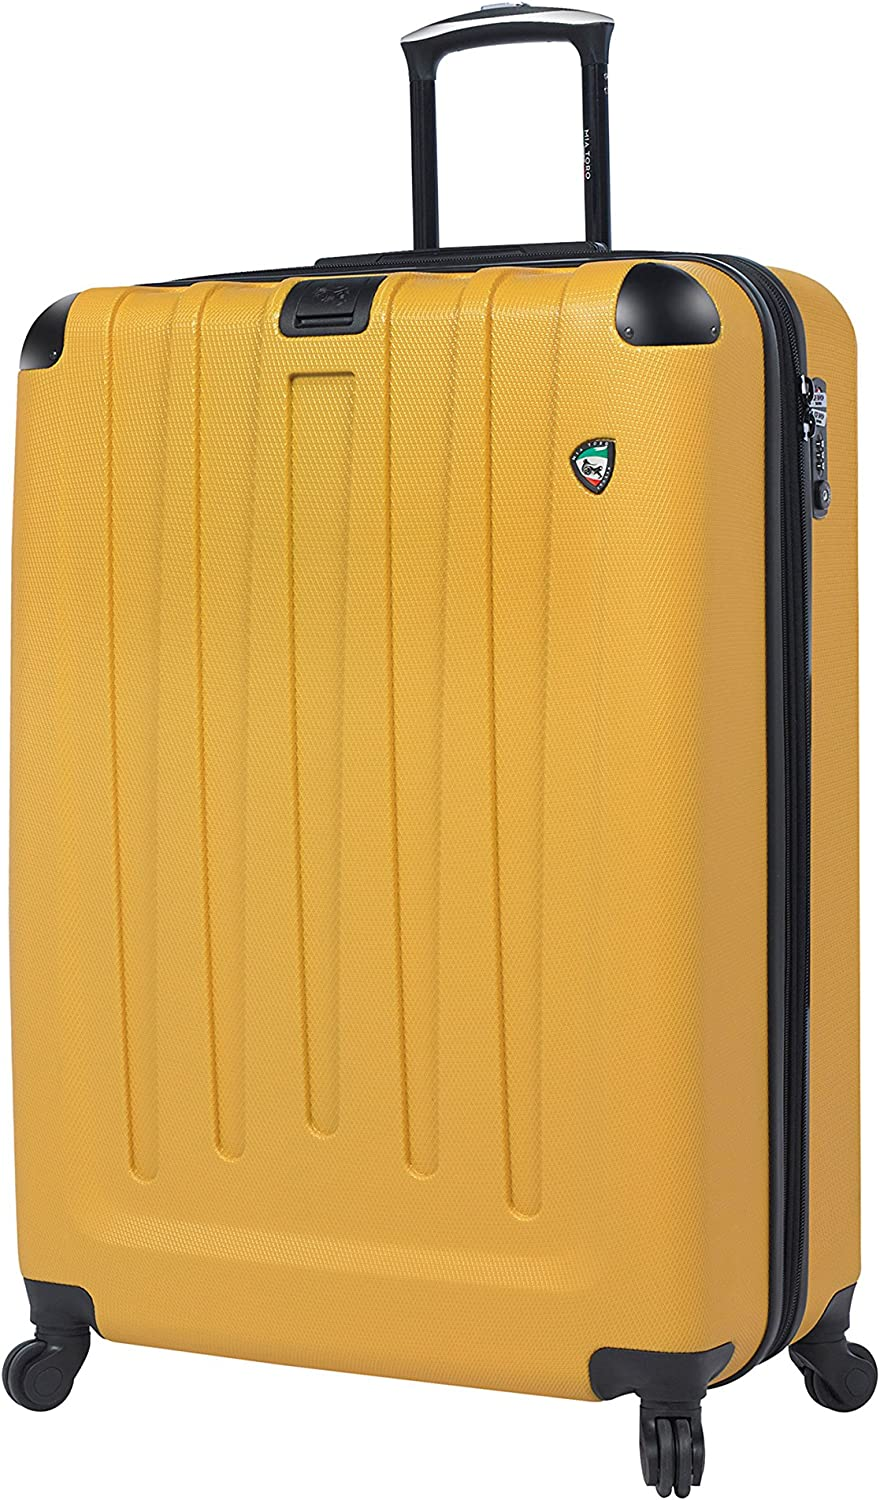 Yellow Mia Toro Italy Vistos Hardside Spinner Carry-on